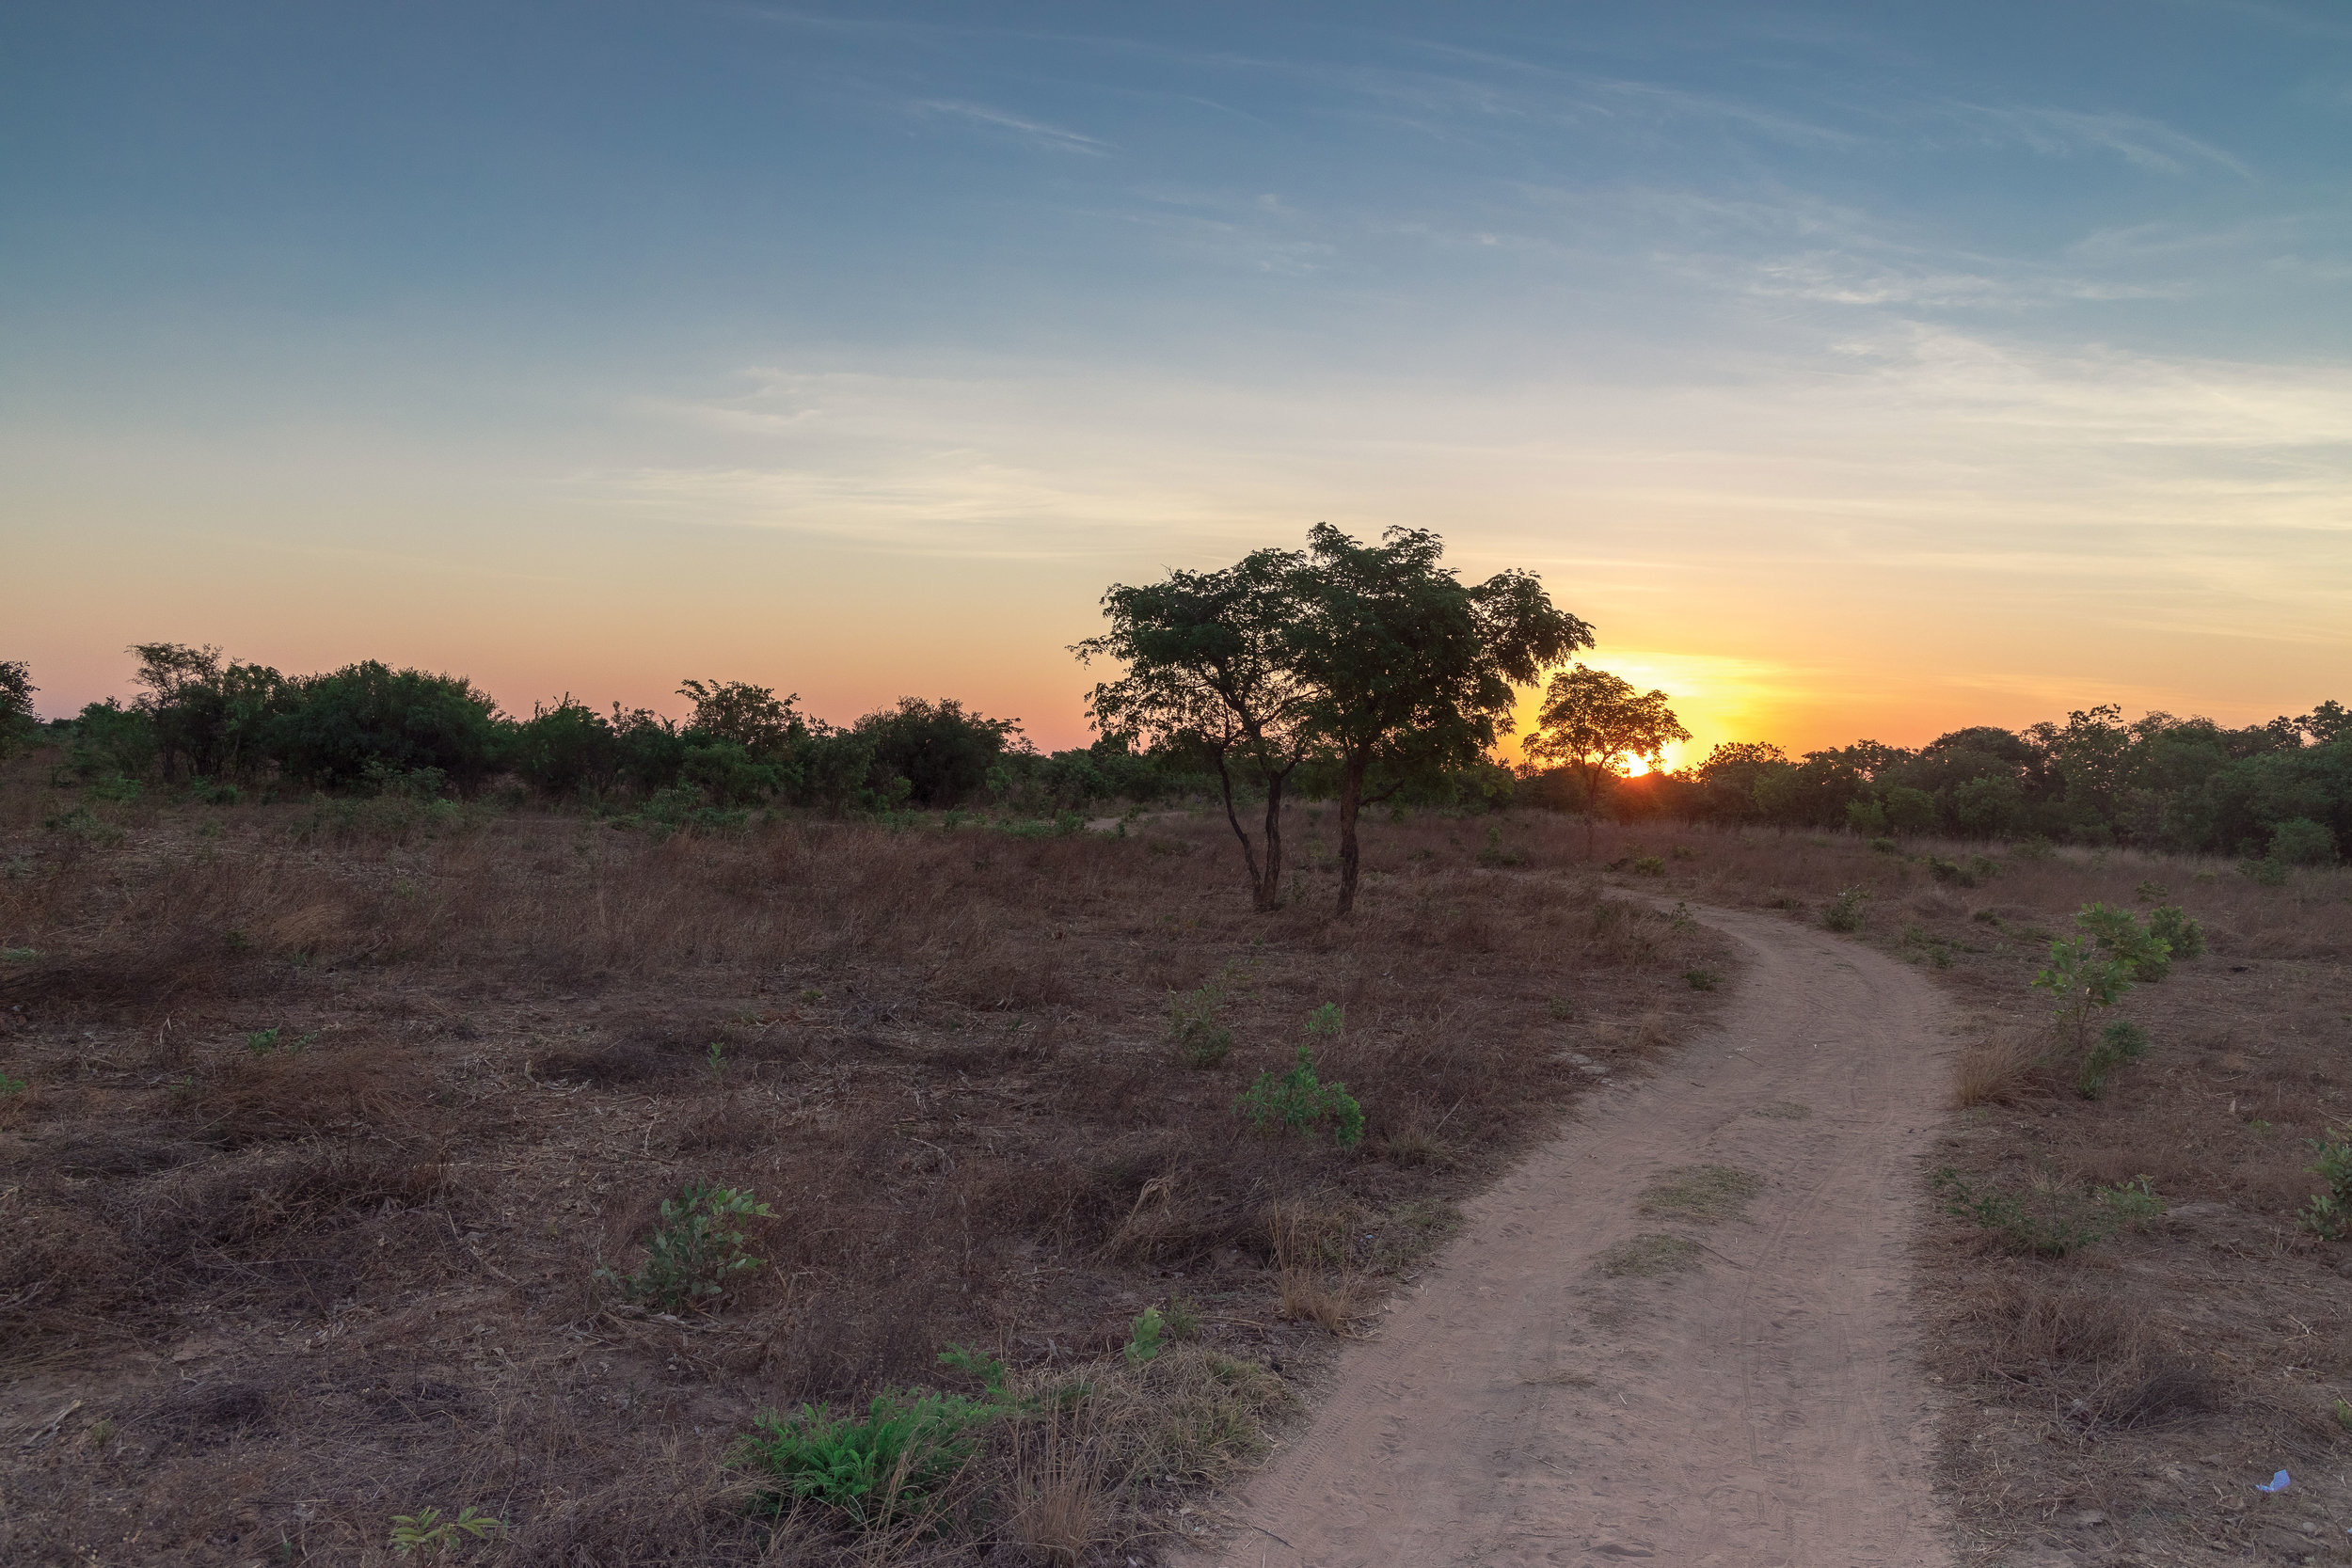 The view of the sunset from Kunchubwi Village.